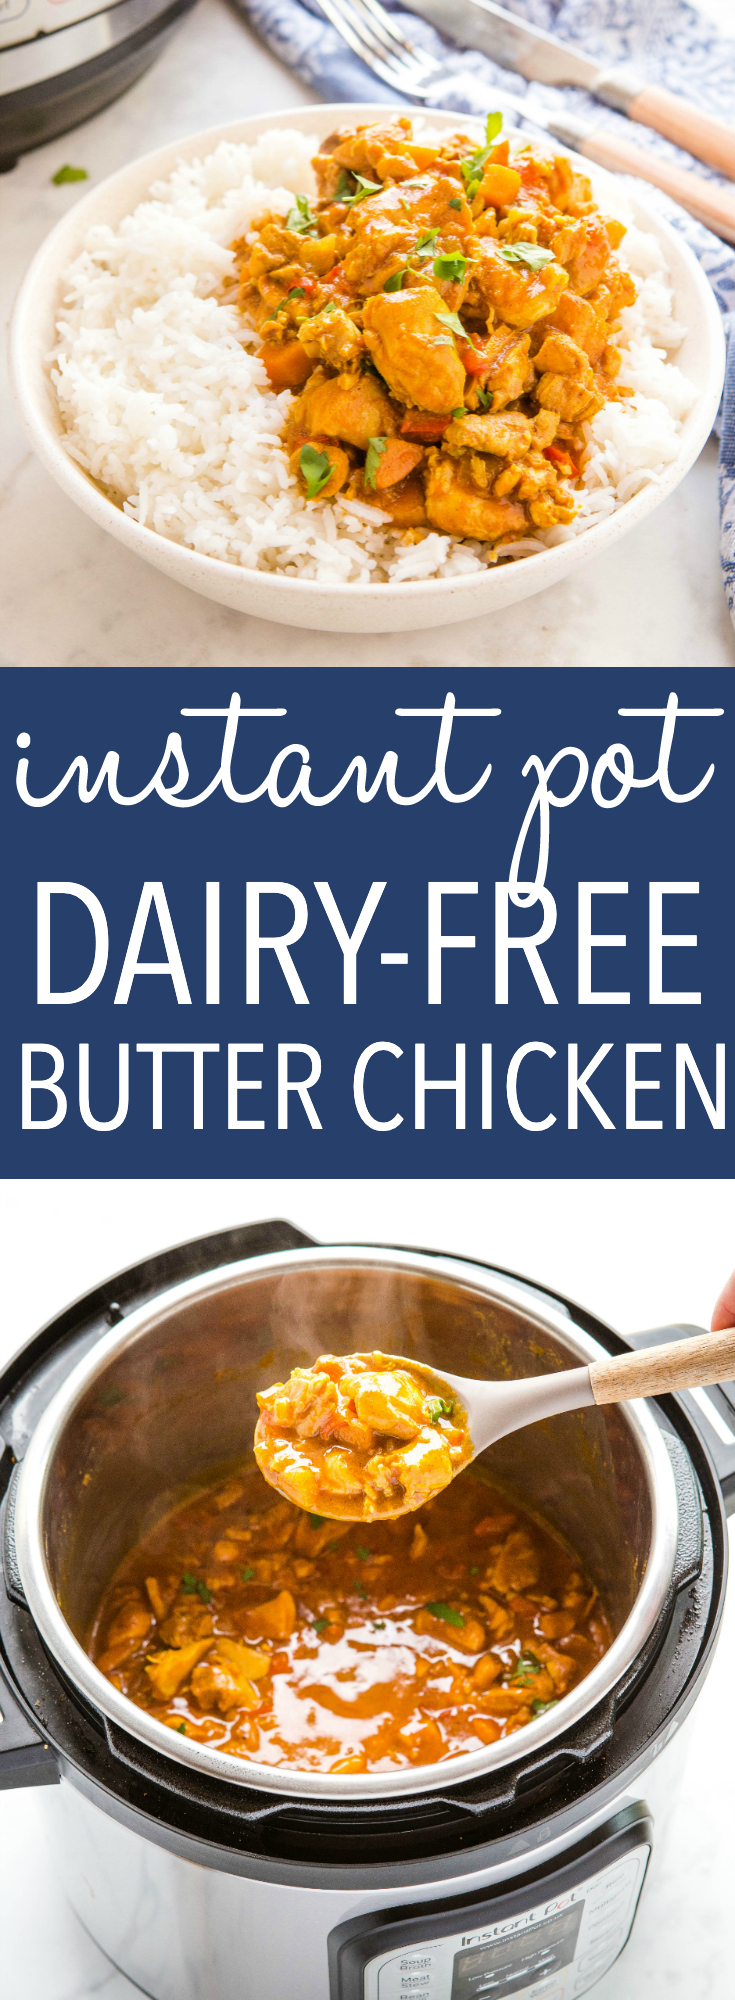 This Dairy-Free Instant Pot Butter Chicken is an easy weeknight dinner that's simple to make in the Instant Pot and better than take-out! Healthy and dairy-free! Recipe from thebusybaker.ca! #instantpot #dairyfree #butterchicken #Indianfood #weeknightmeal #betterthantakeout #takeaway #familymeal #curry #restaurantquality via @busybakerblog